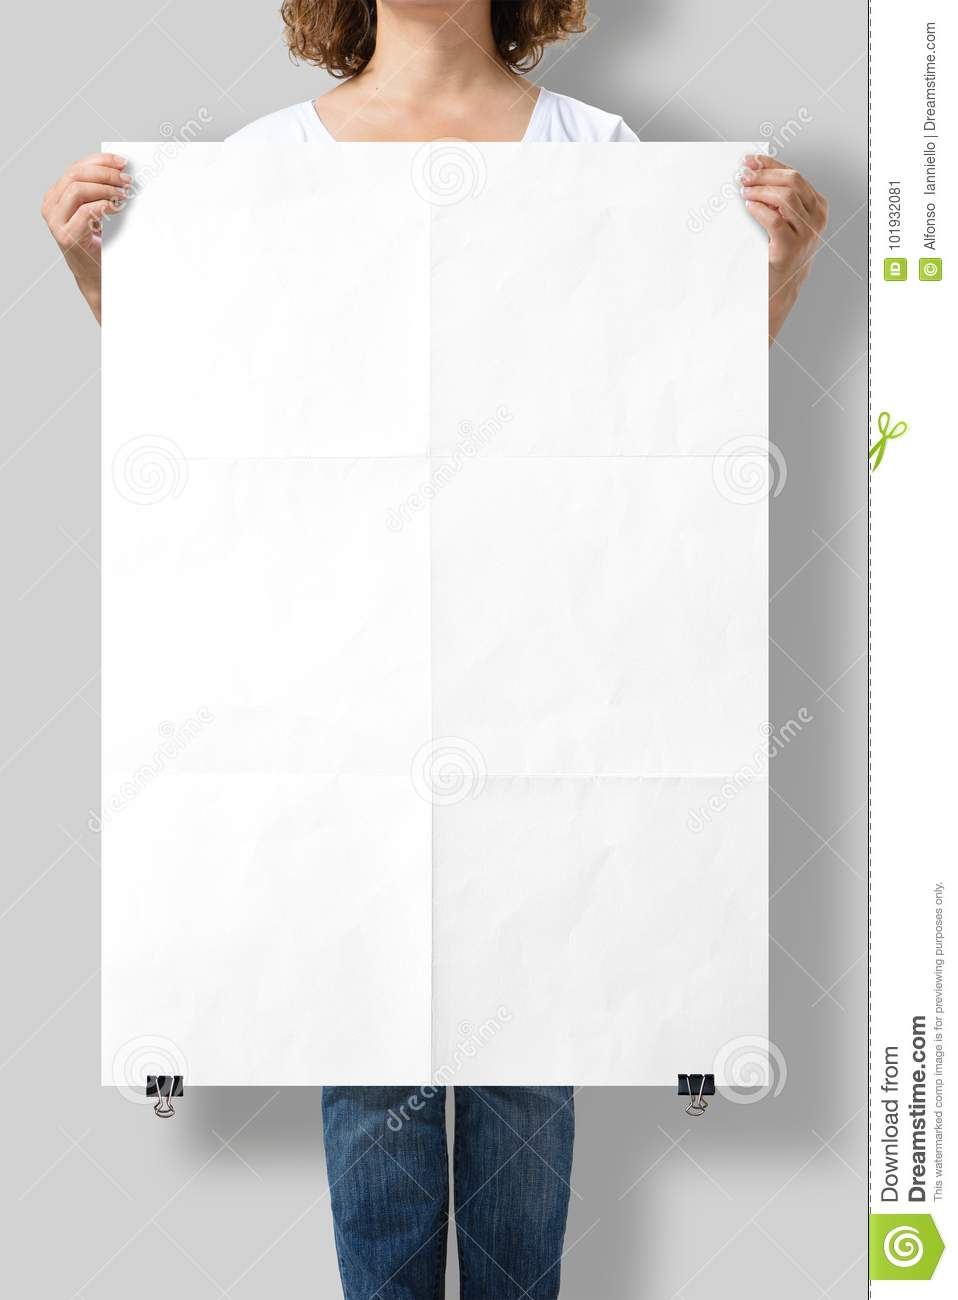 Woman holding a blank A1 poster mockup.